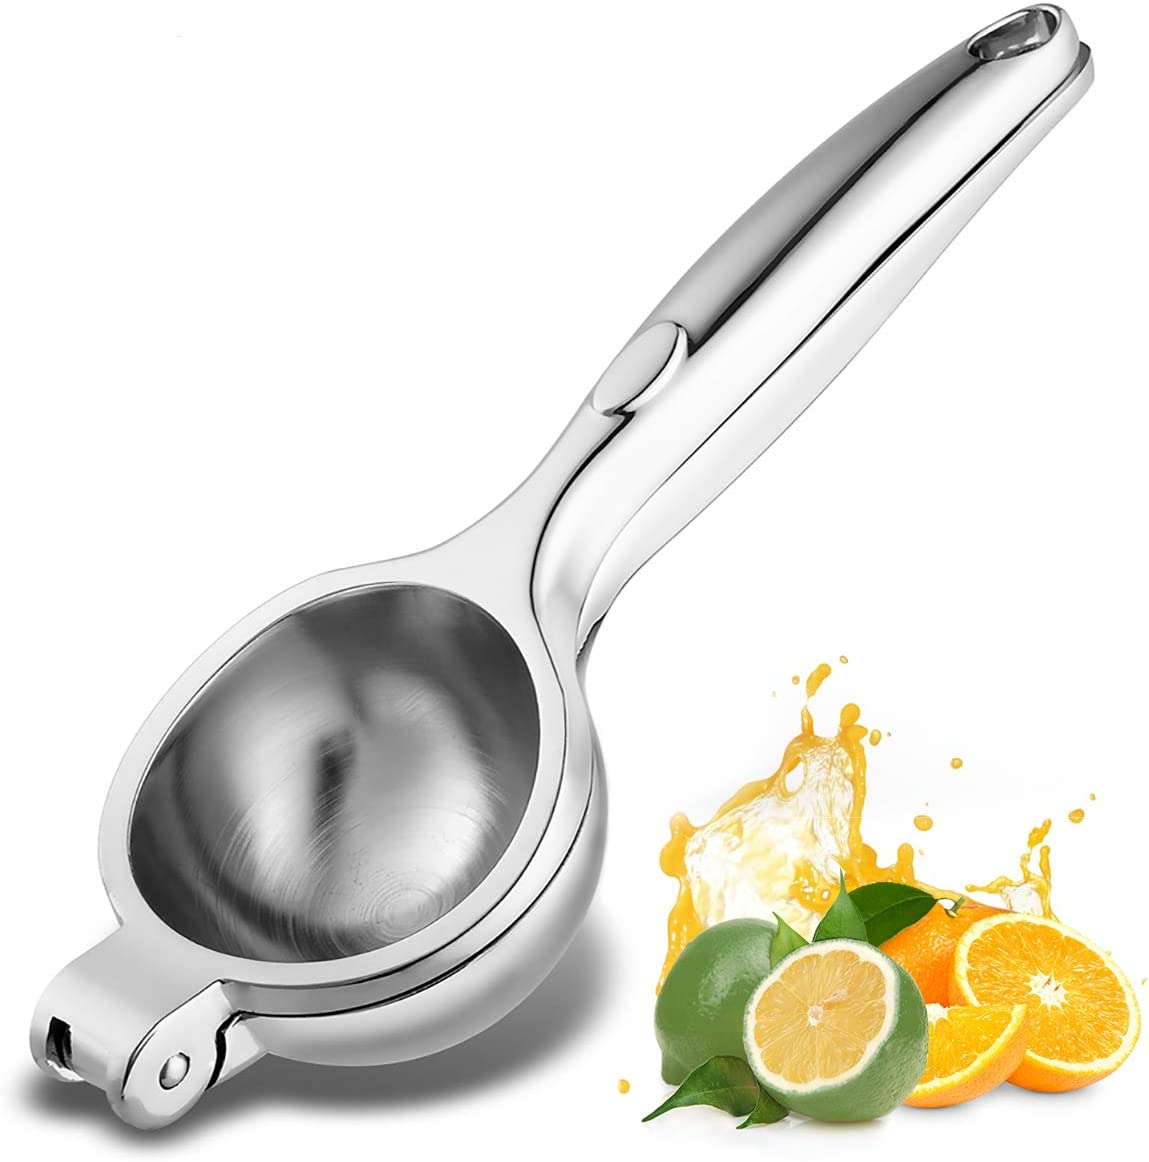 Manual Citrus Press Juicers,Stainless Steel Juicer Lemon Lime Squeezer,Lime Hand Juice Lemon Squeezer Press Citrus Juicers,Manual Hand Juicer Citrus Squeezer Extractor